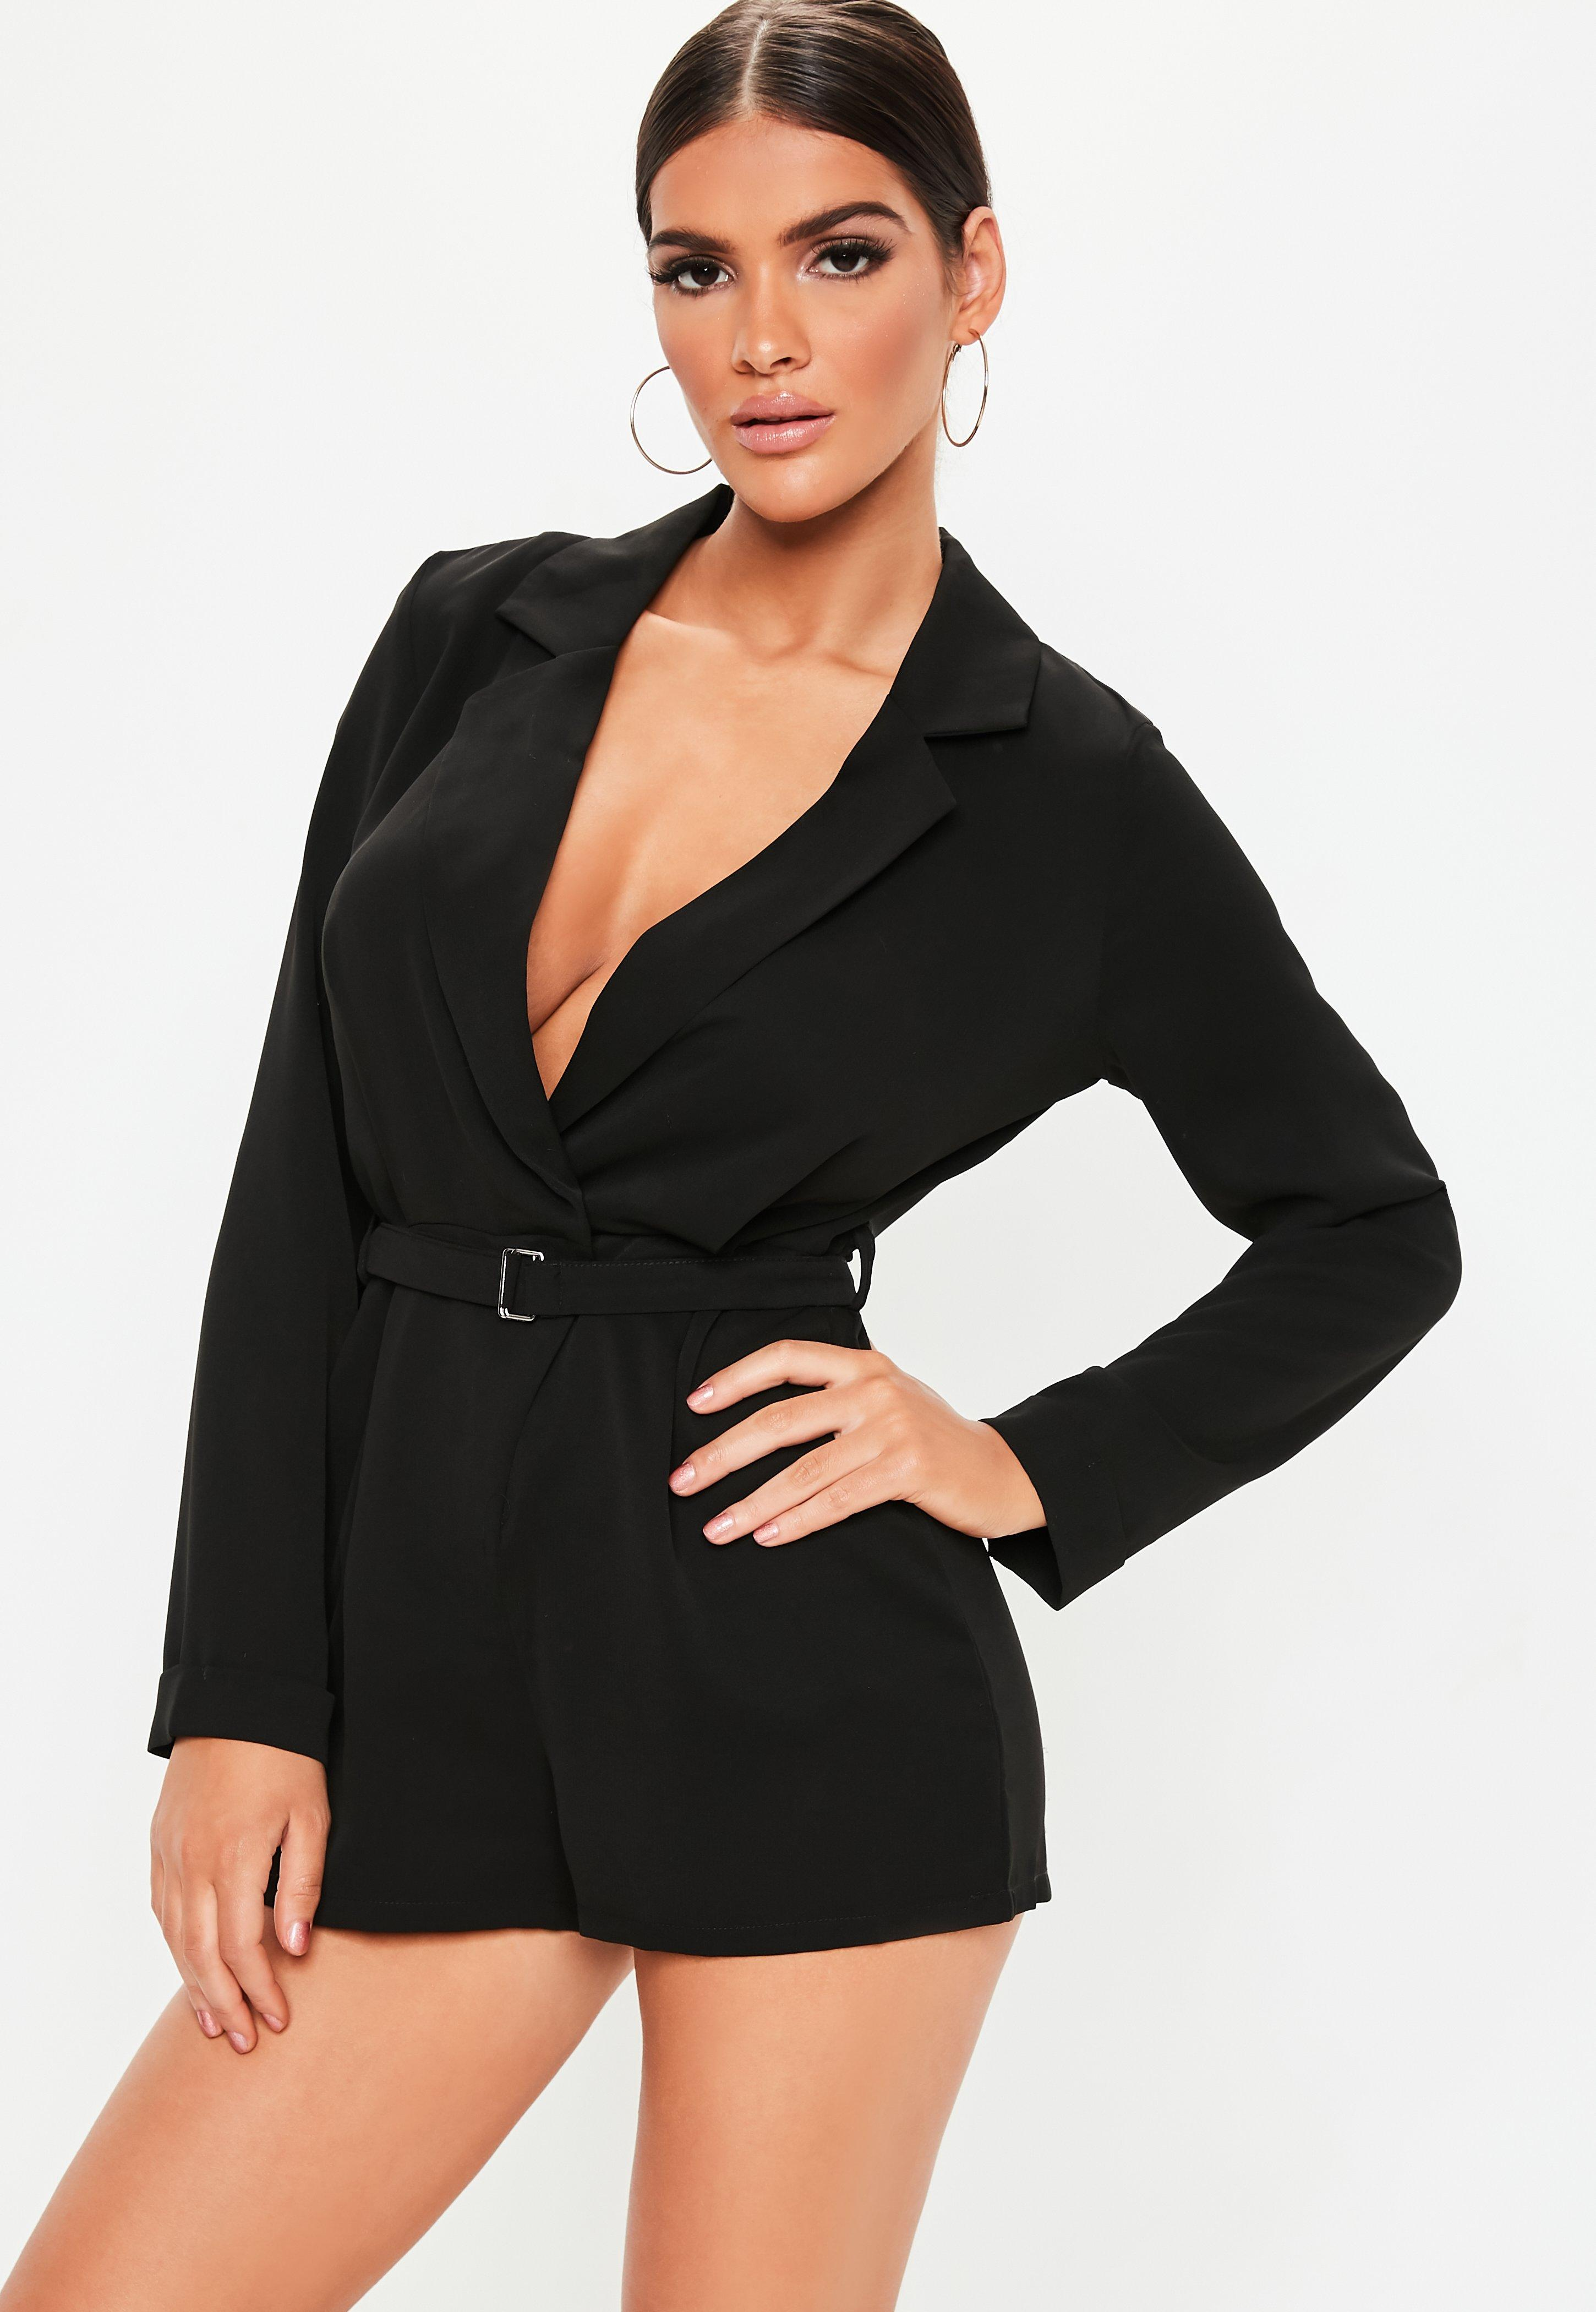 5040aef614f Rompers for Women - off the Shoulder Rompers 2019